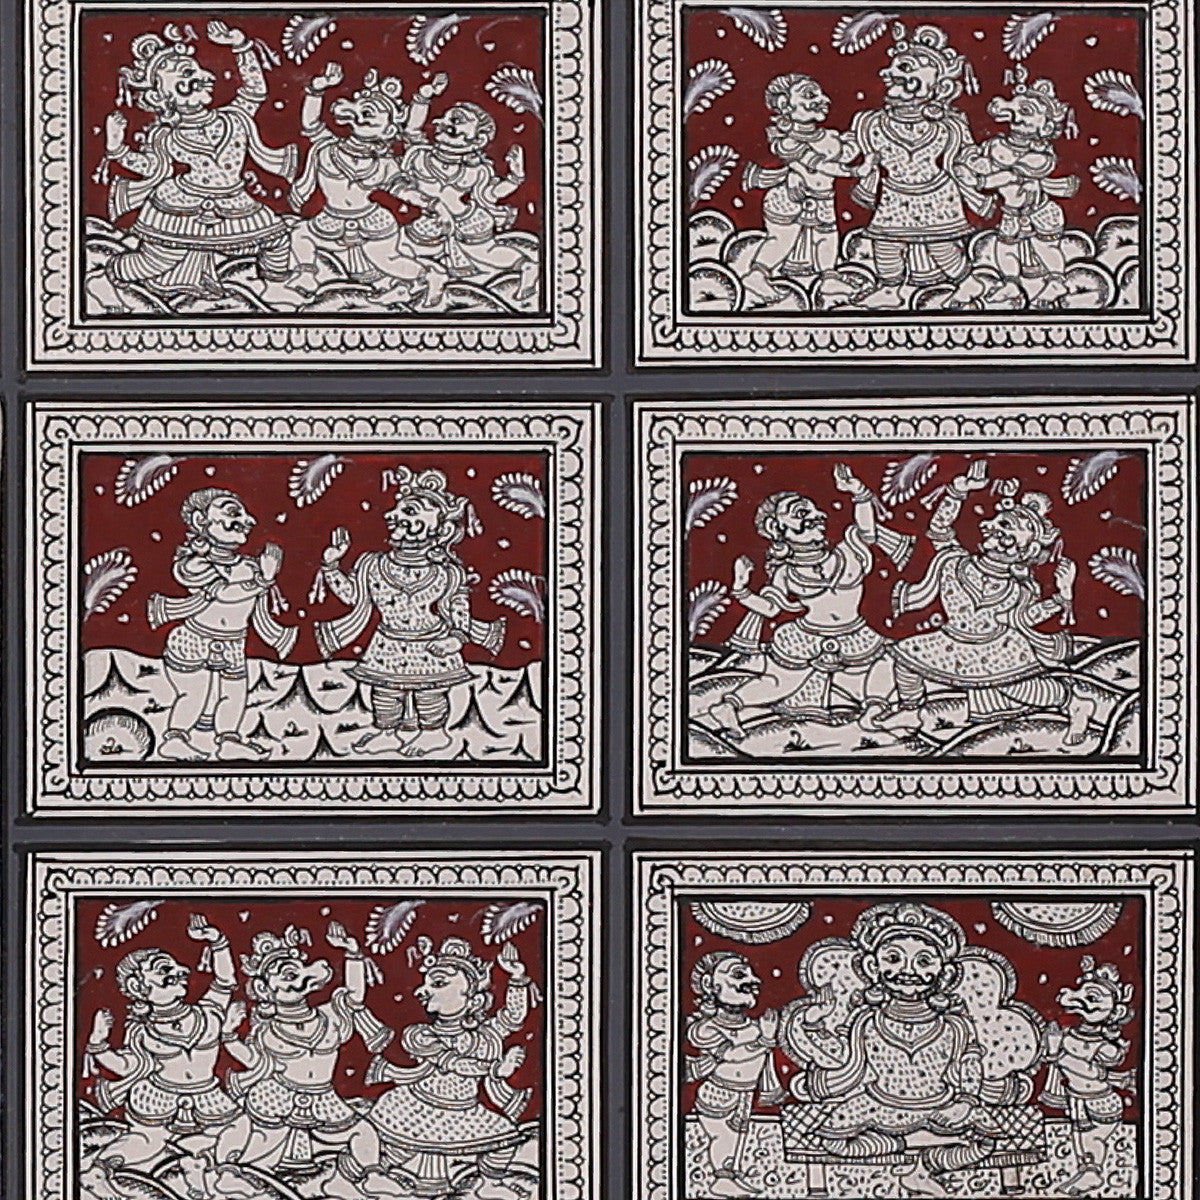 Pattachitra Painting of 'Goddess Durga Story' by Narayan Das